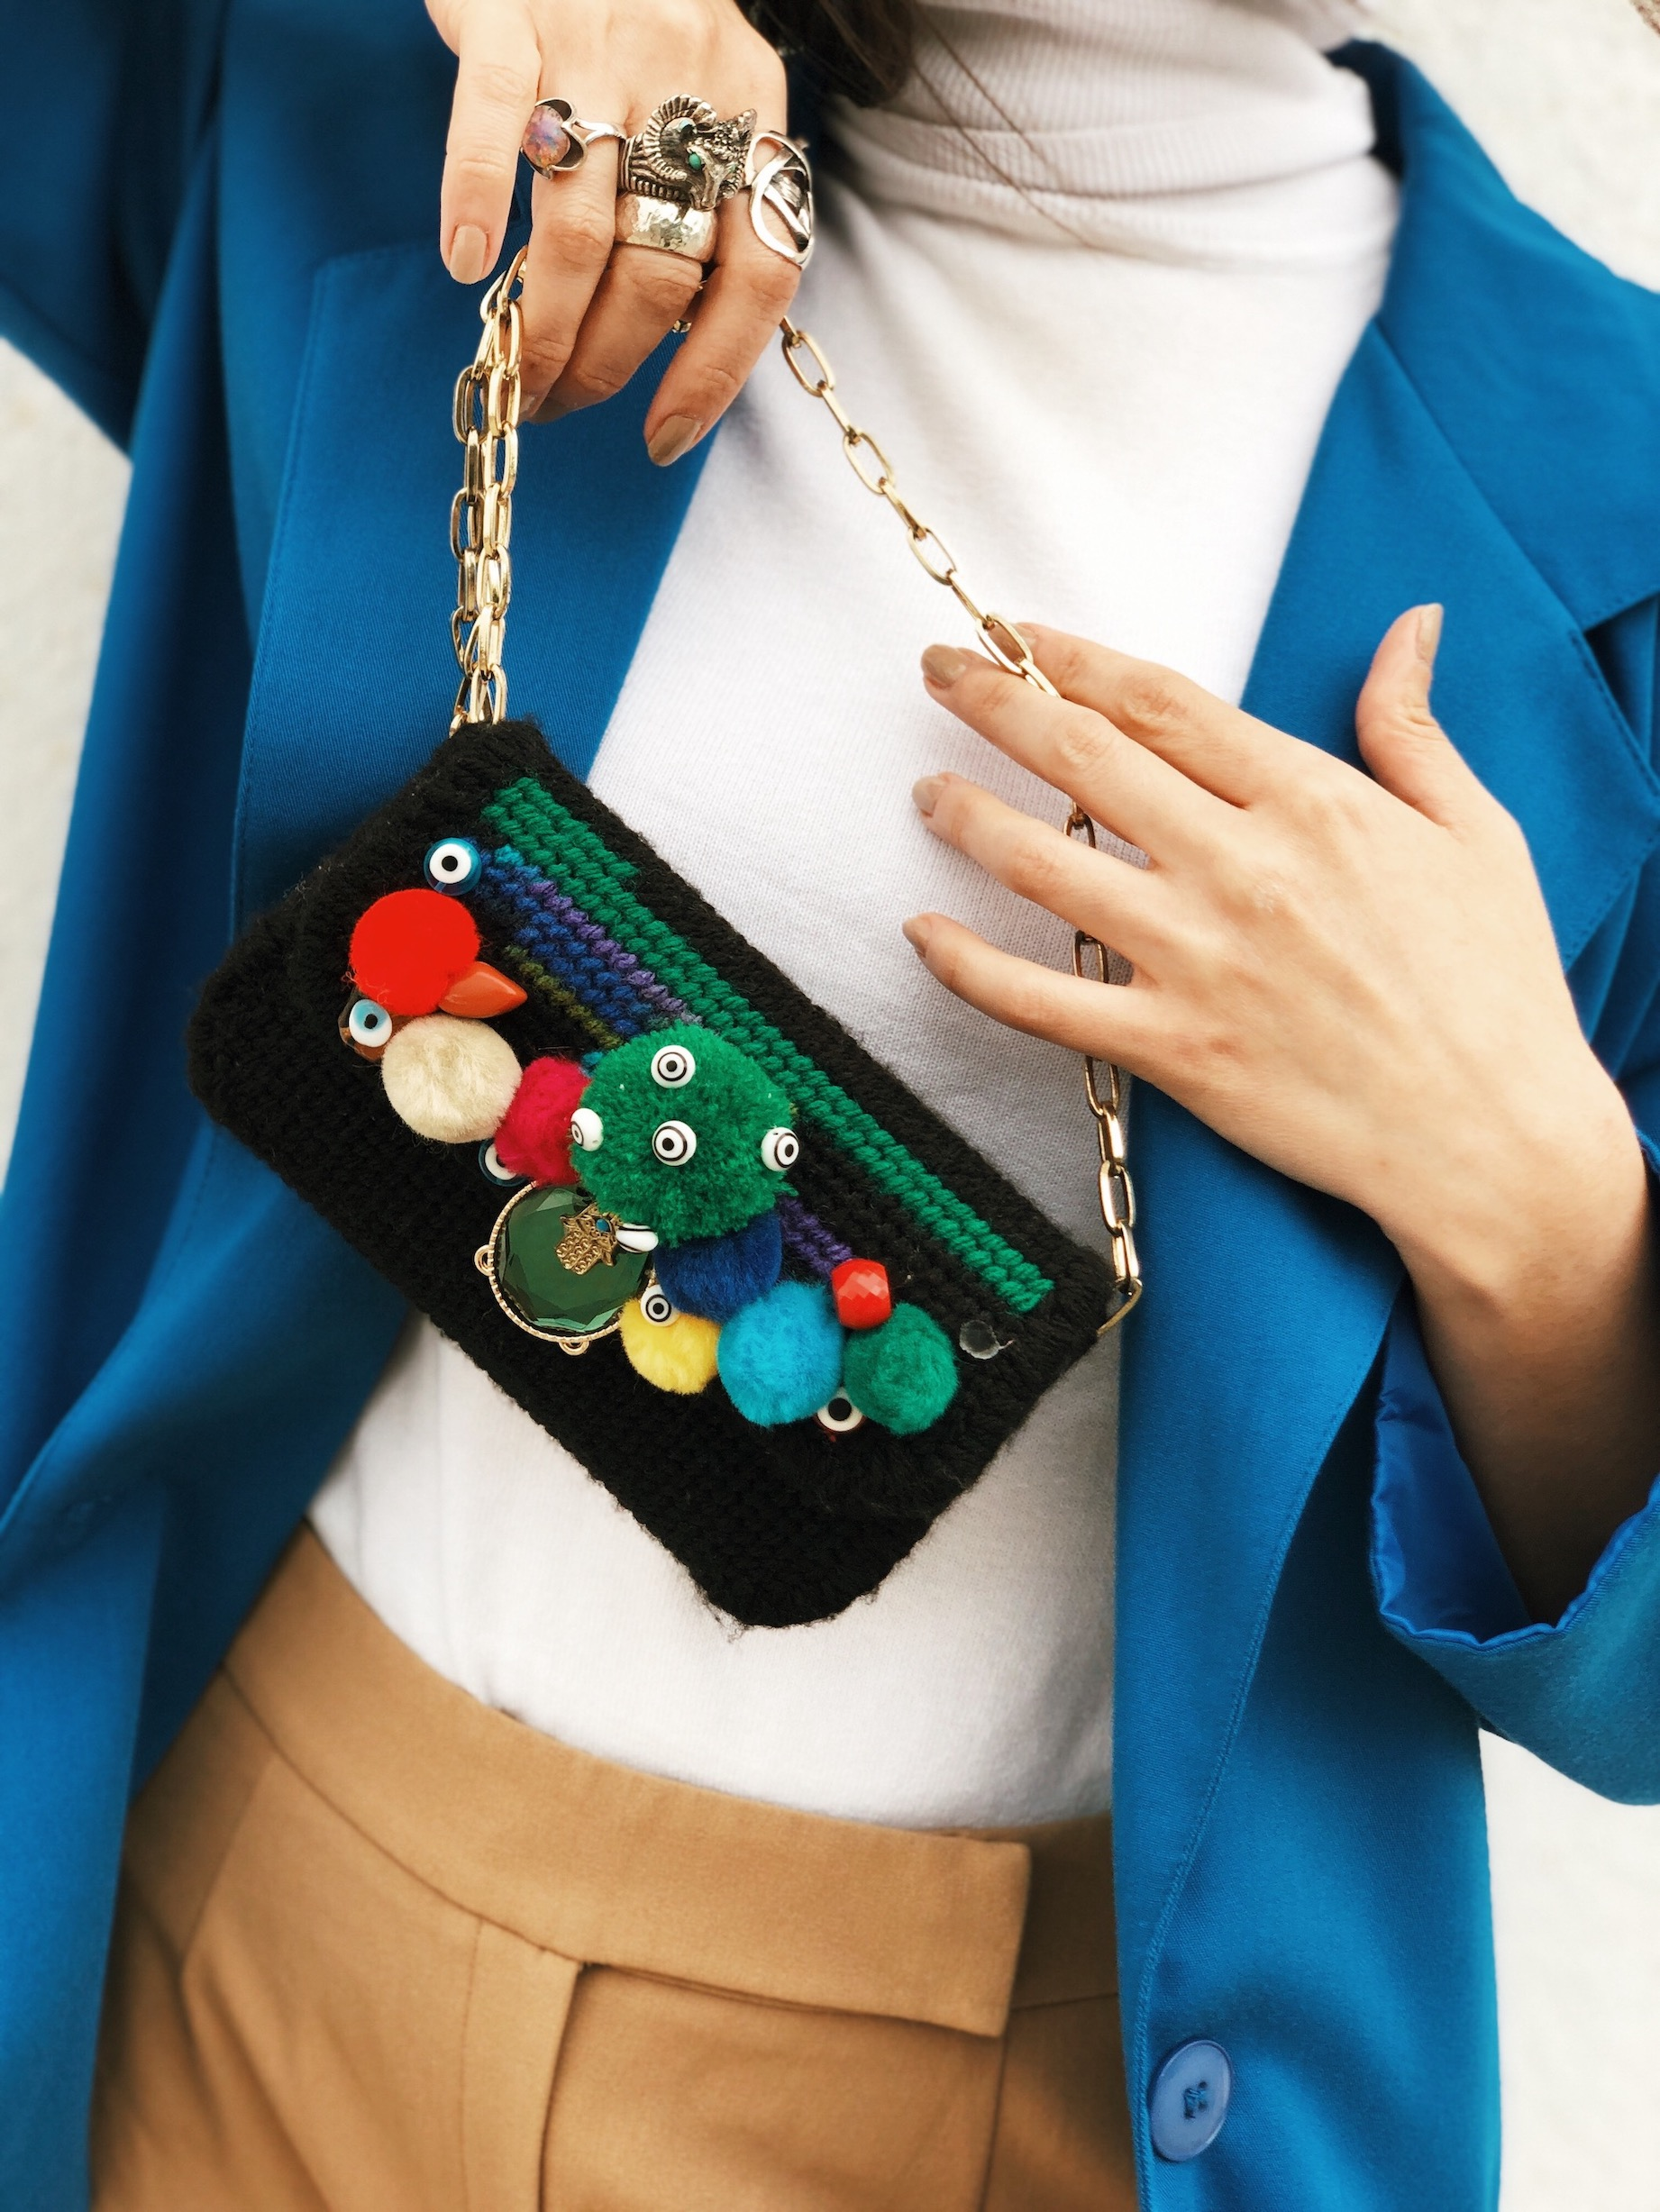 Upcycled pom pom bag - A Week Of Cruelty-Free Outfits & Vegan Beauty With Jessica Salazar From All There August on The Good Trade